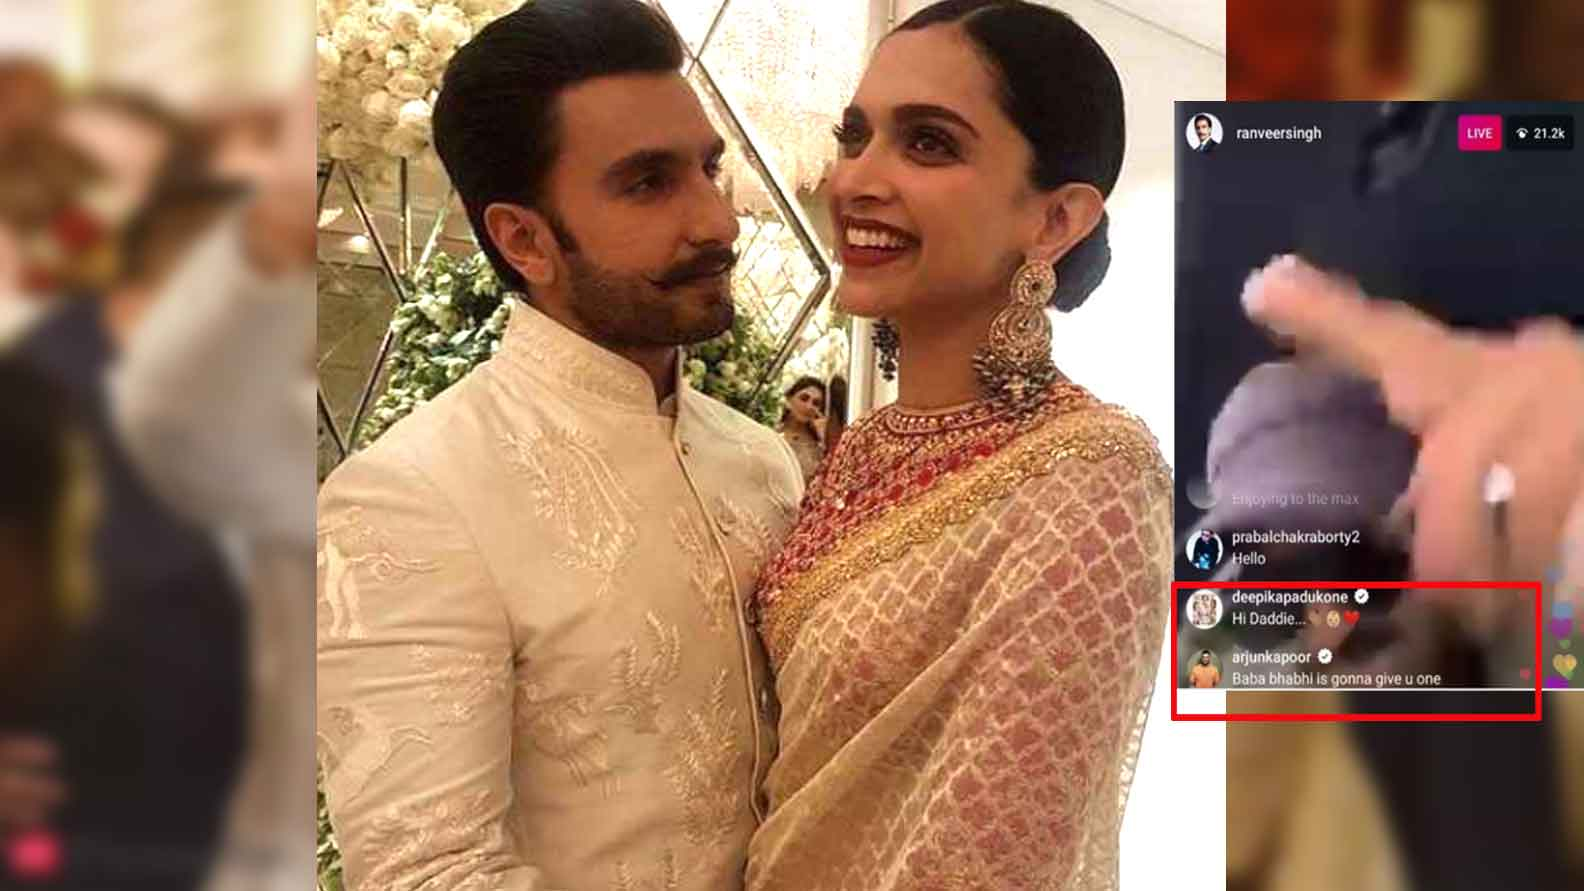 Deepika Padukone's 'Hi Daddie' comment on hubby Ranveer Singh's live chat leaves fans guessing!